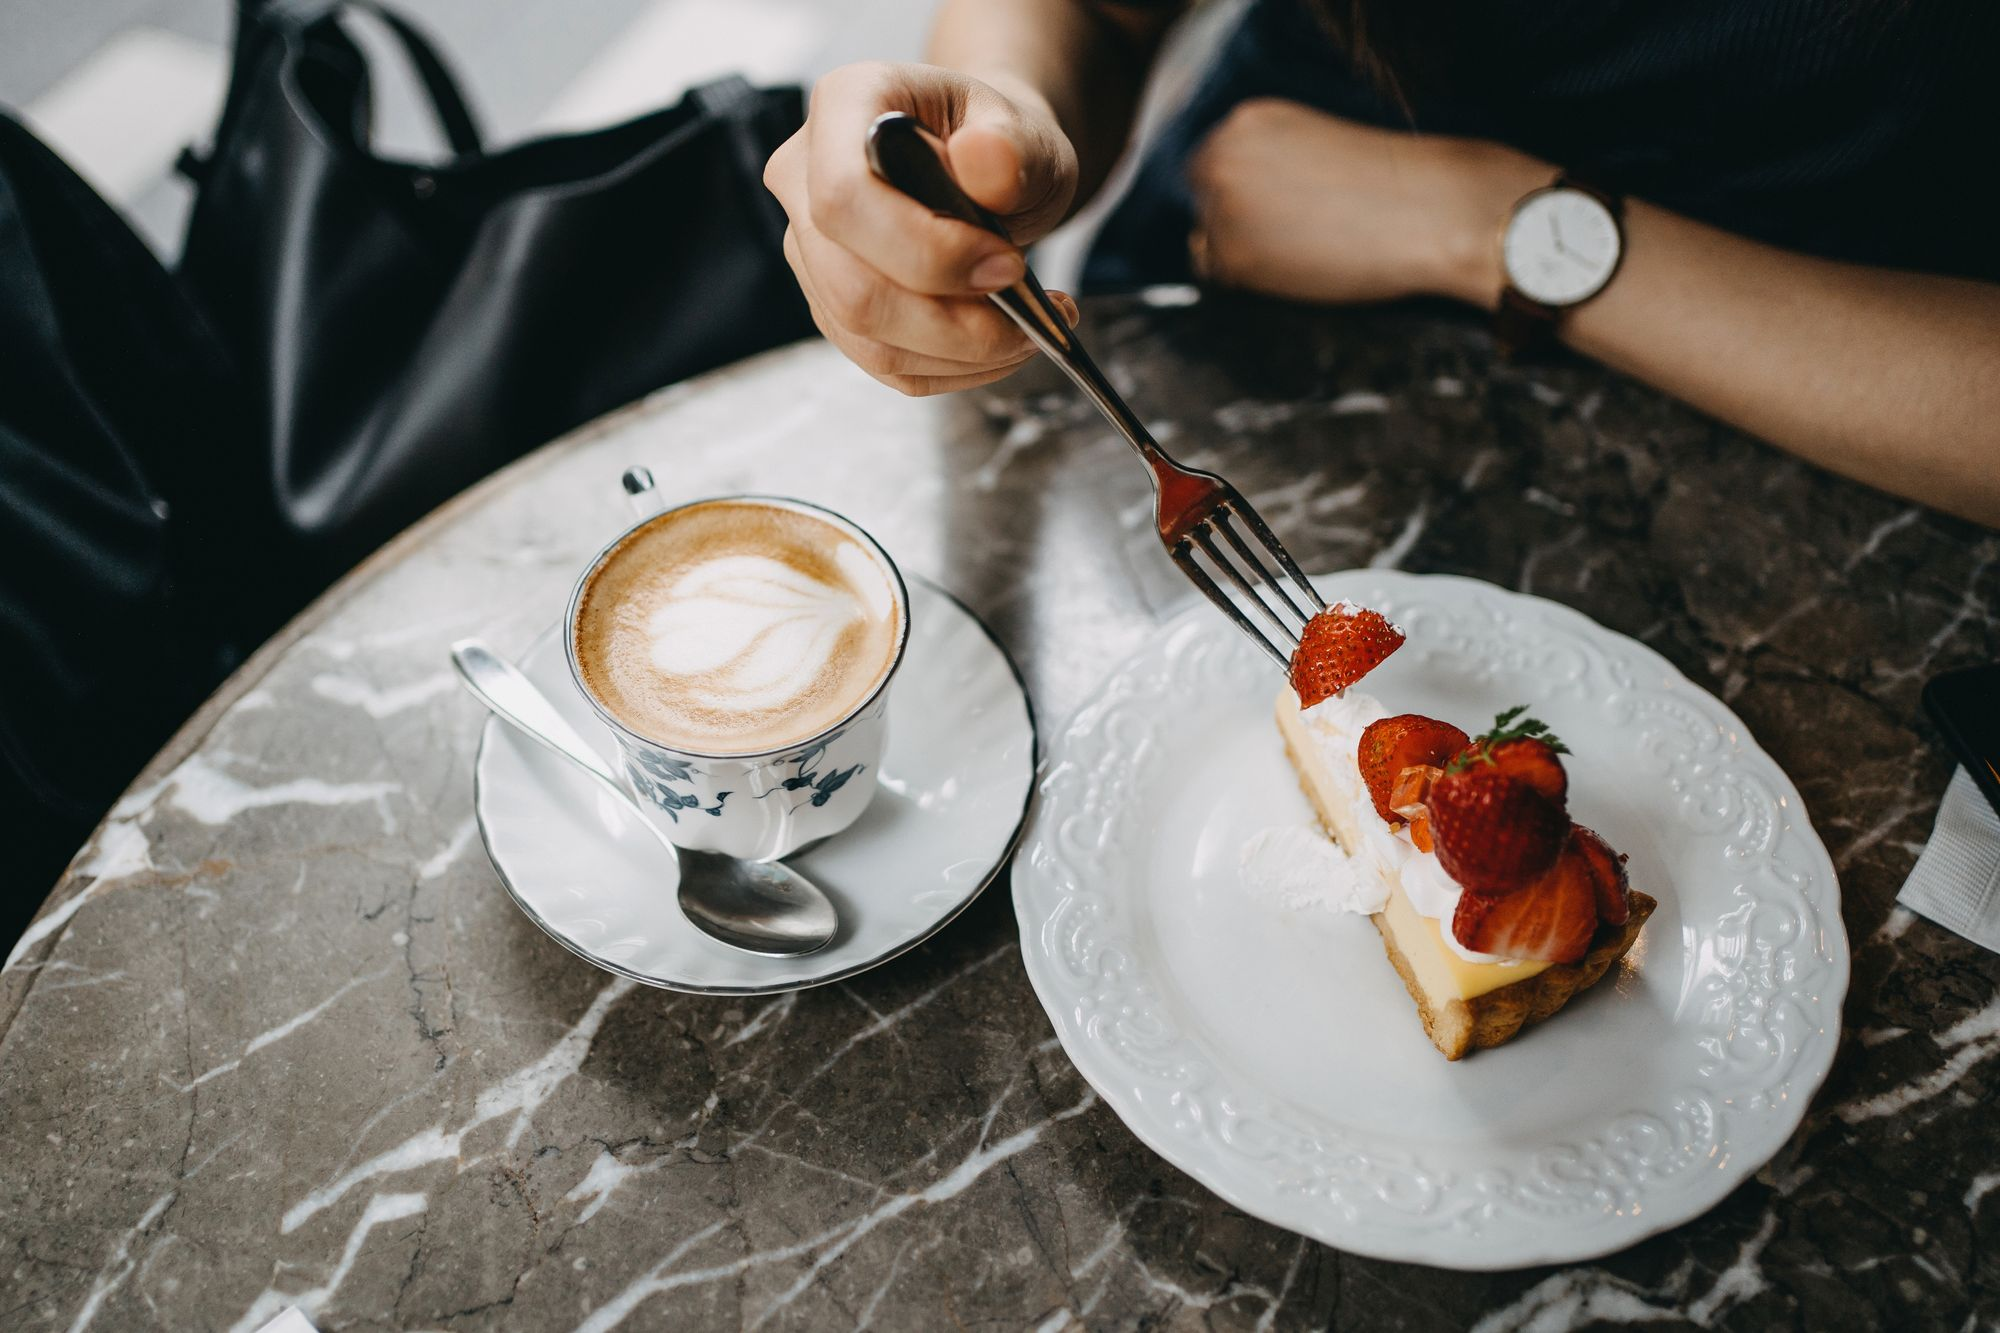 Increase Sales With 'The Dessert Pitch'